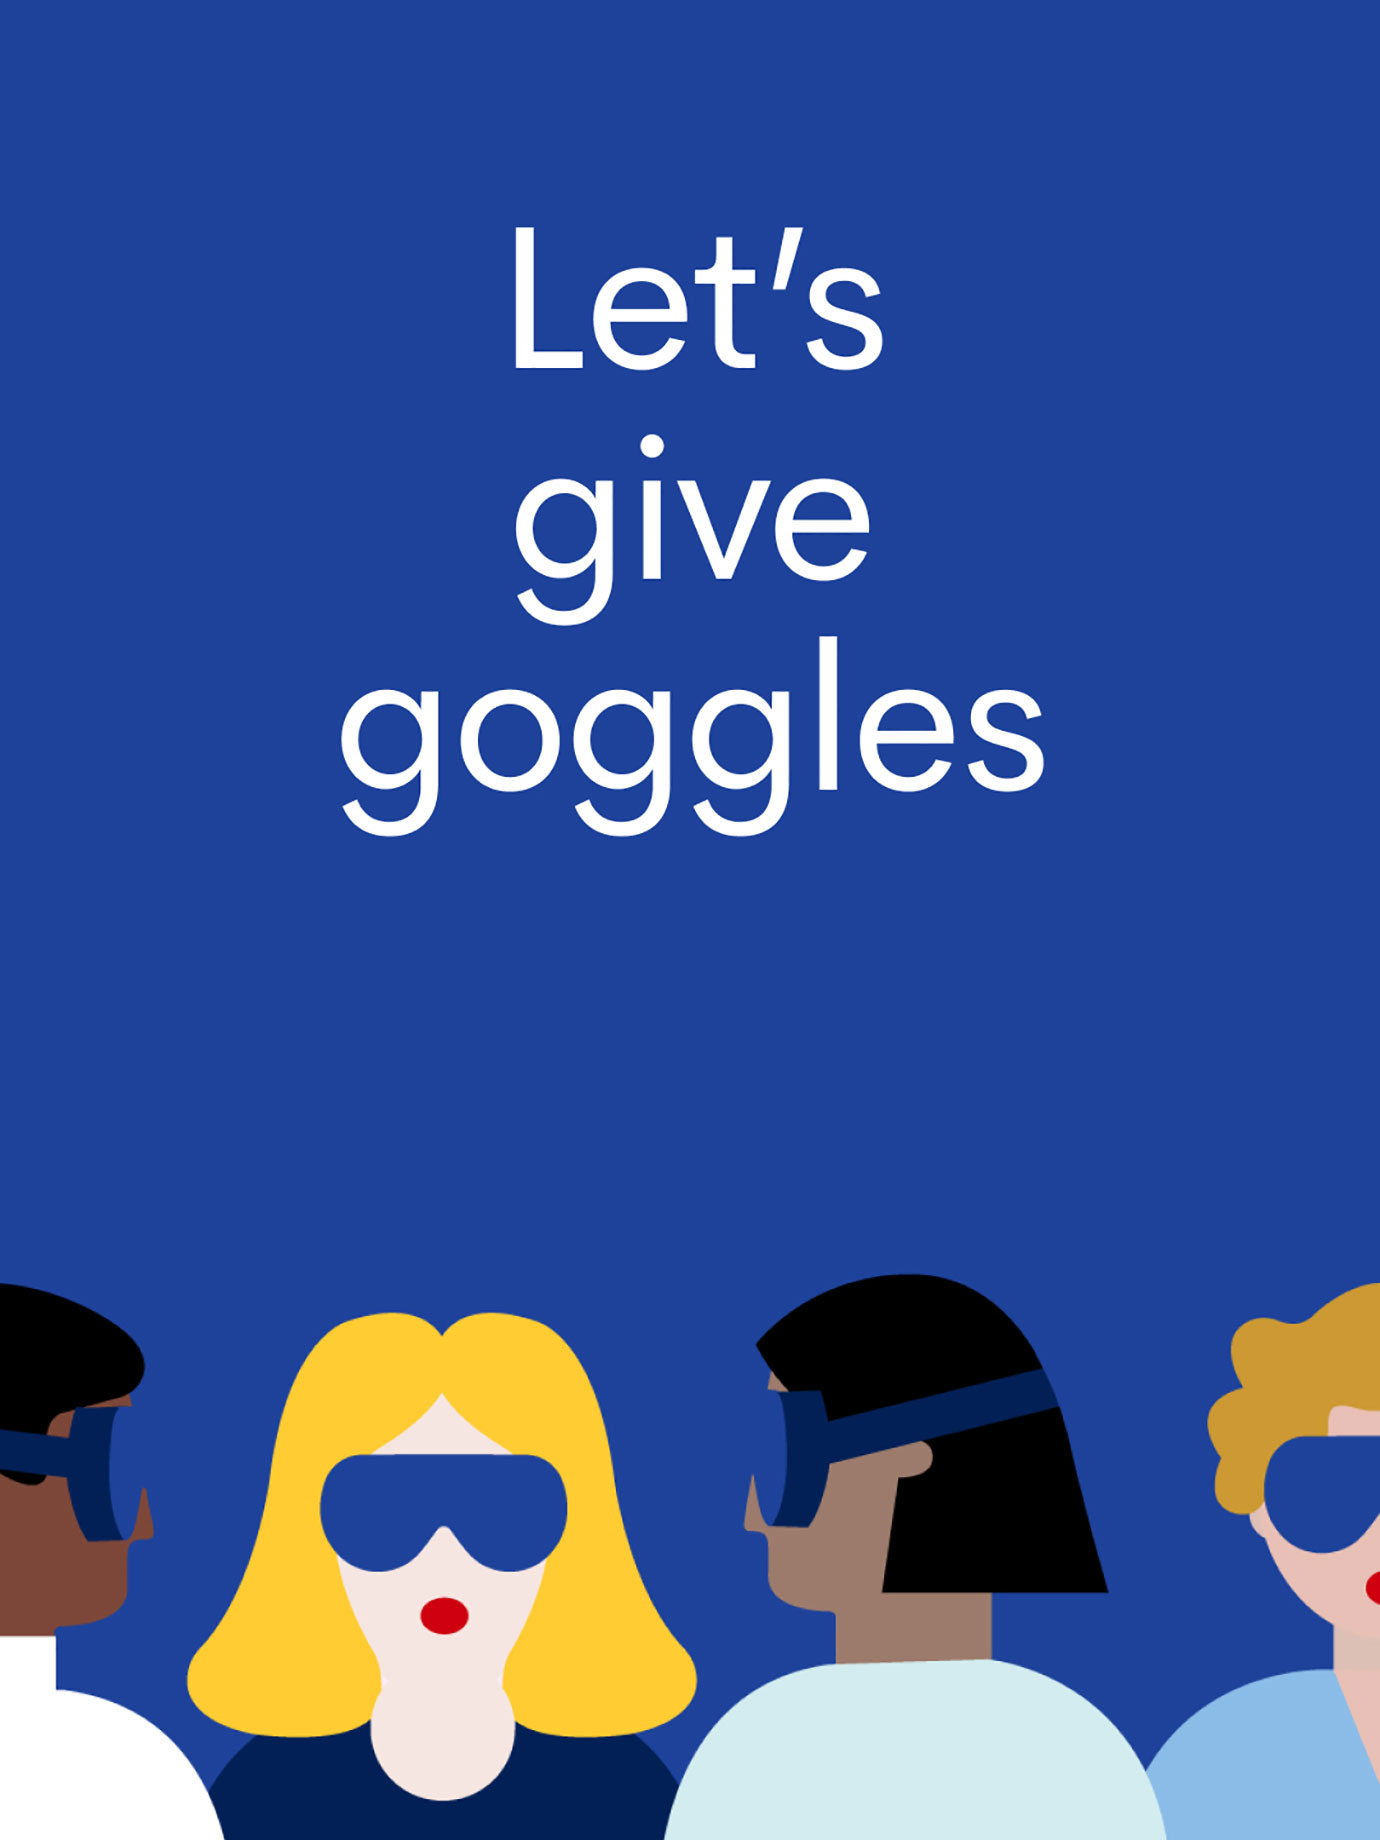 An illustration asking to give goggles.